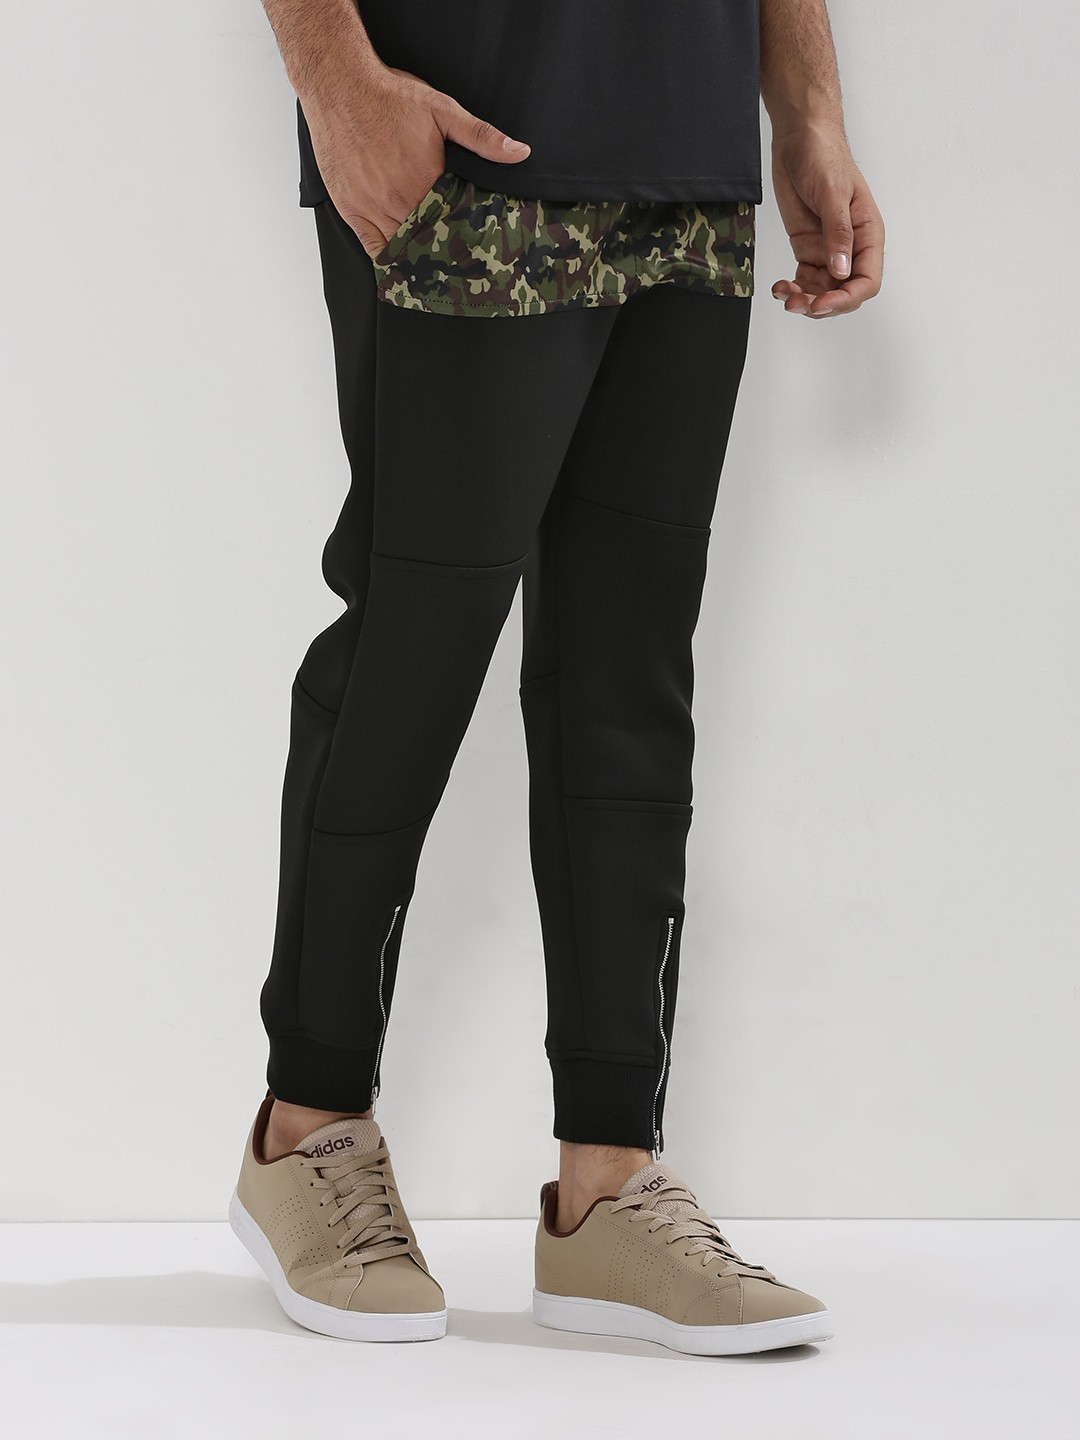 Adamo London Black Camo Camo Panel Zippered Hem Joggers 1